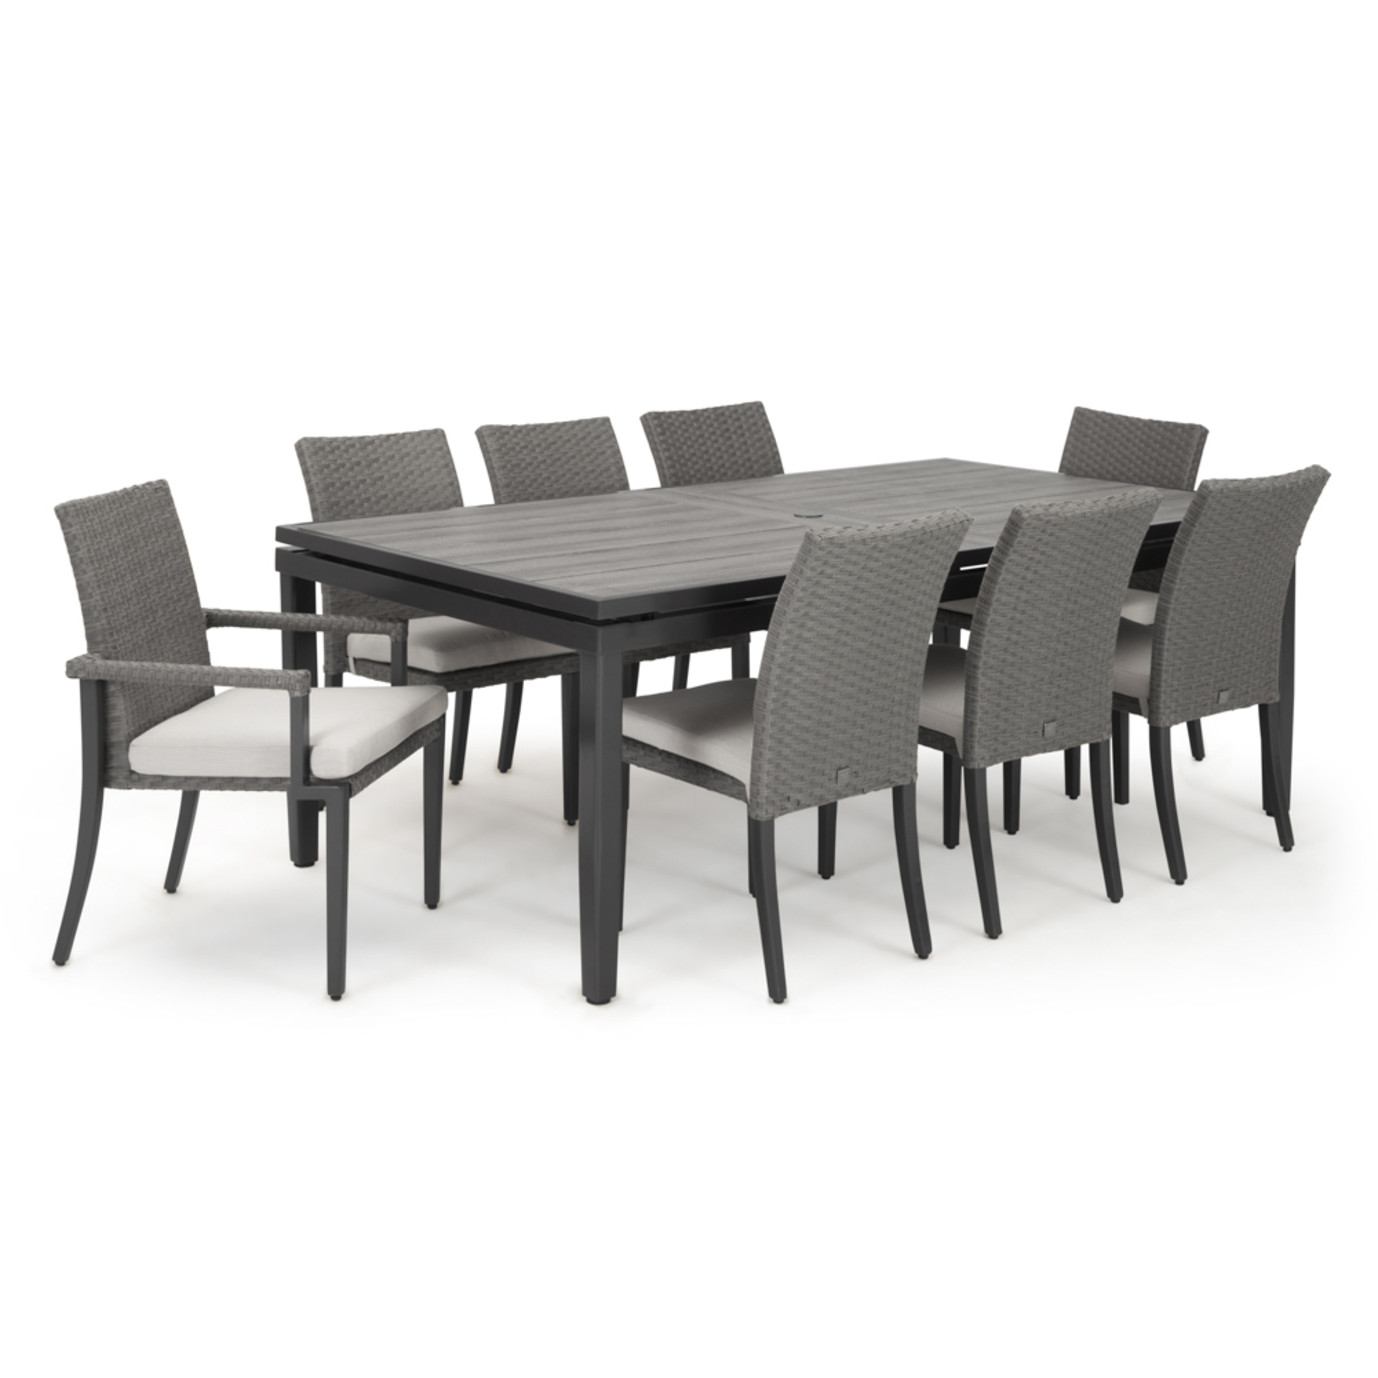 Vistano® 9pc Outdoor Dining Set